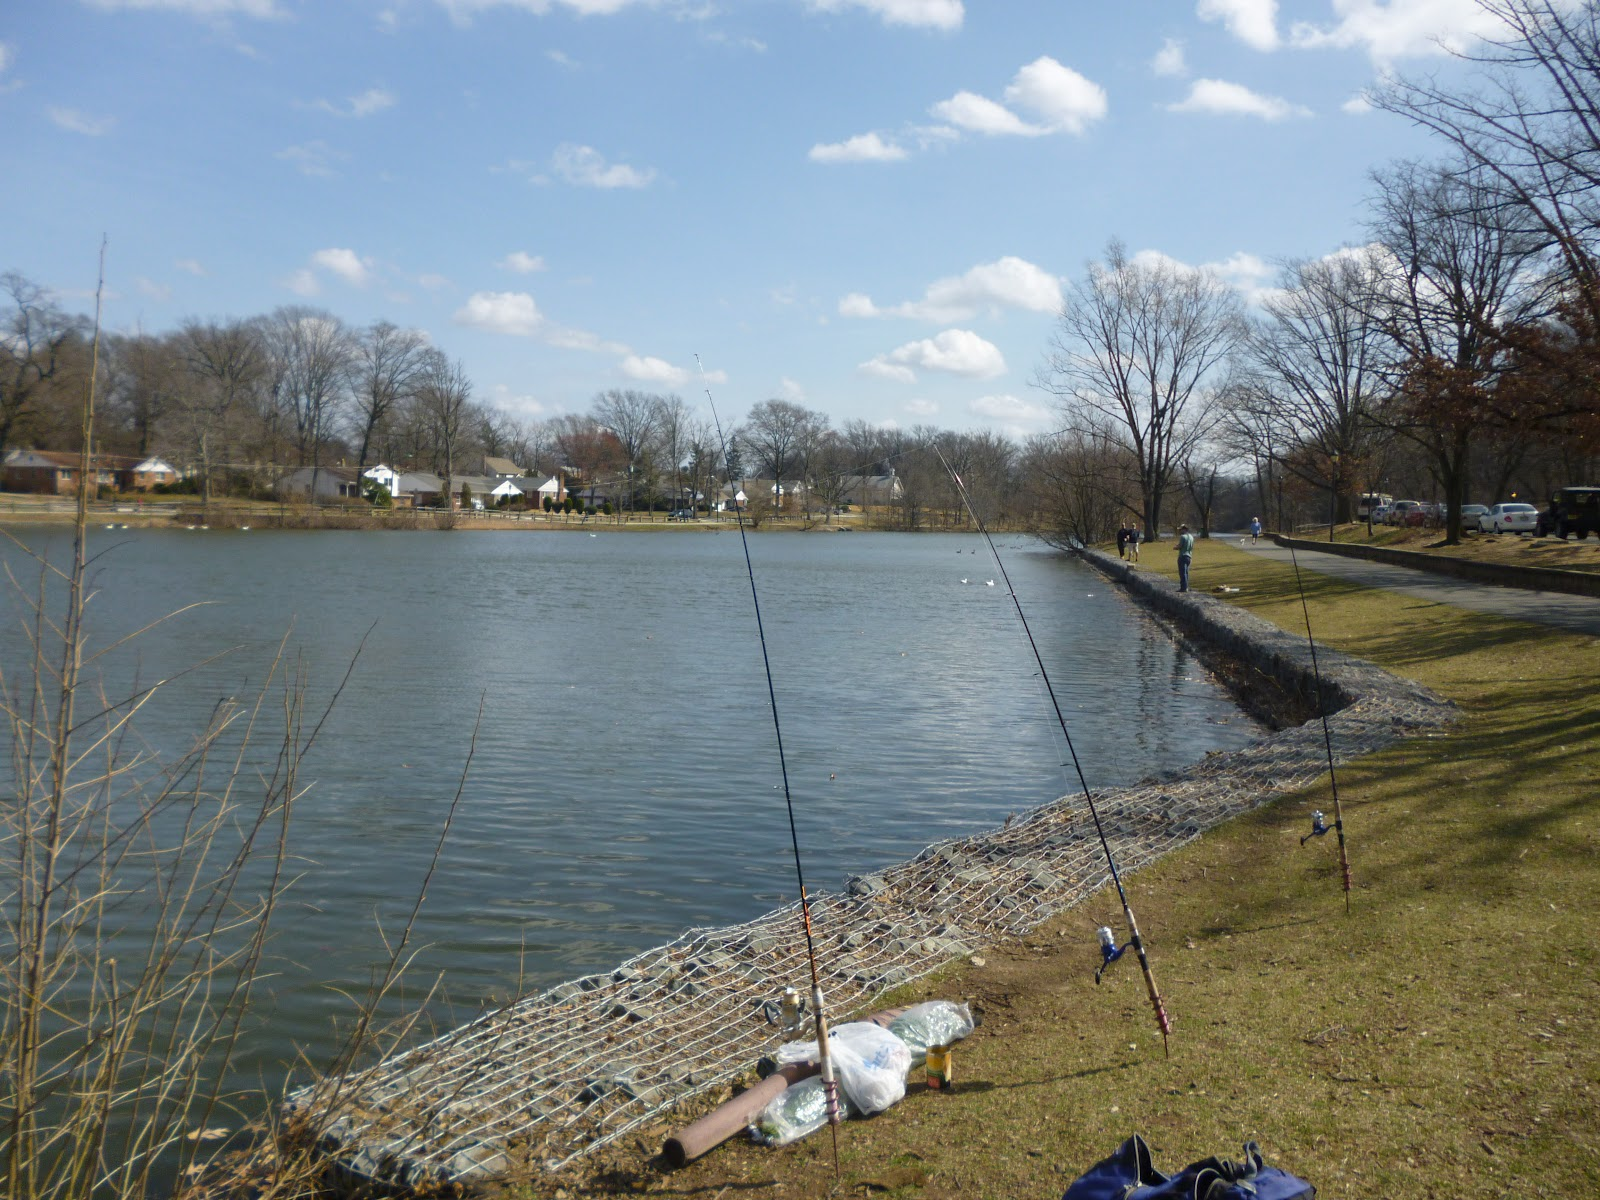 Extreme philly fishing back at the audubon haddon lake in nj for Extreme philly fishing